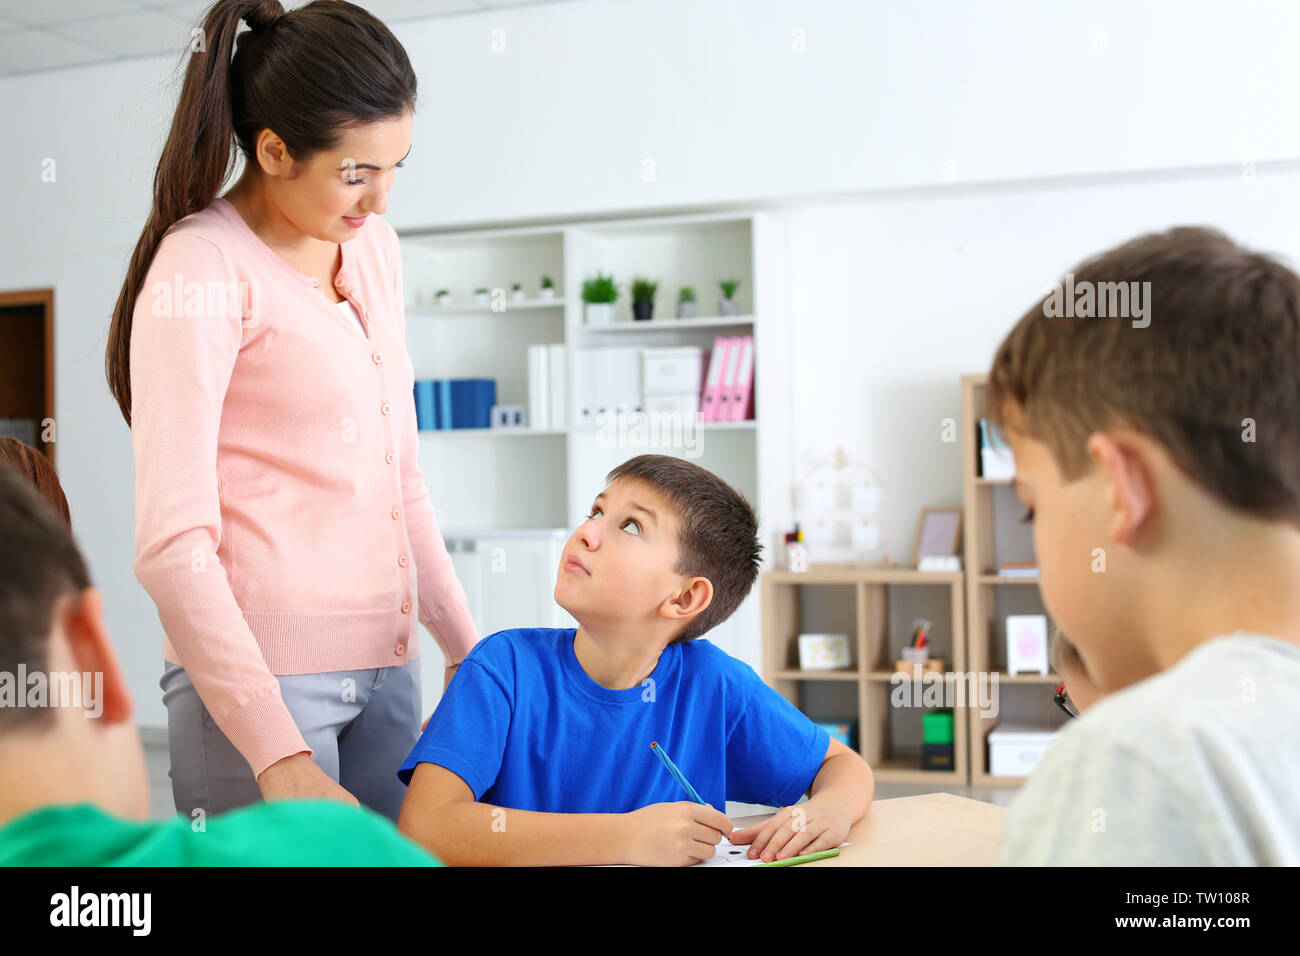 Female teacher conducting lesson in classroom - Stock Image